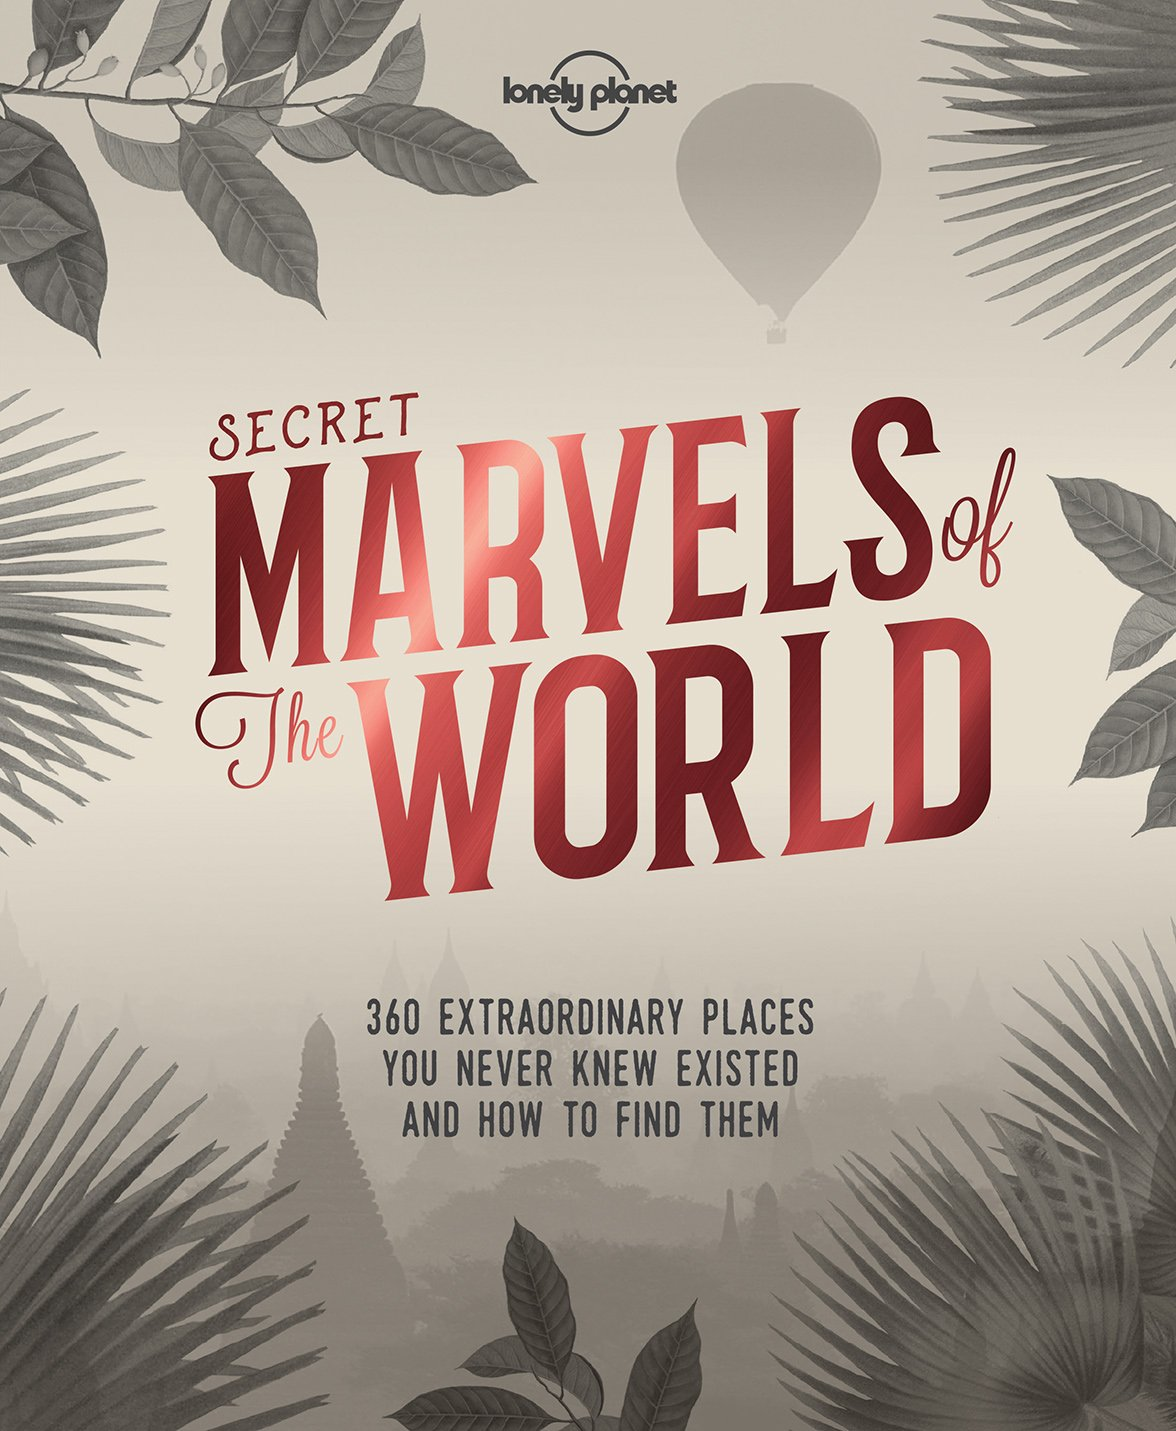 Secret Marvels of the World: 360 extraordinary places you never knew existed and where to find them (Lonely Planet)